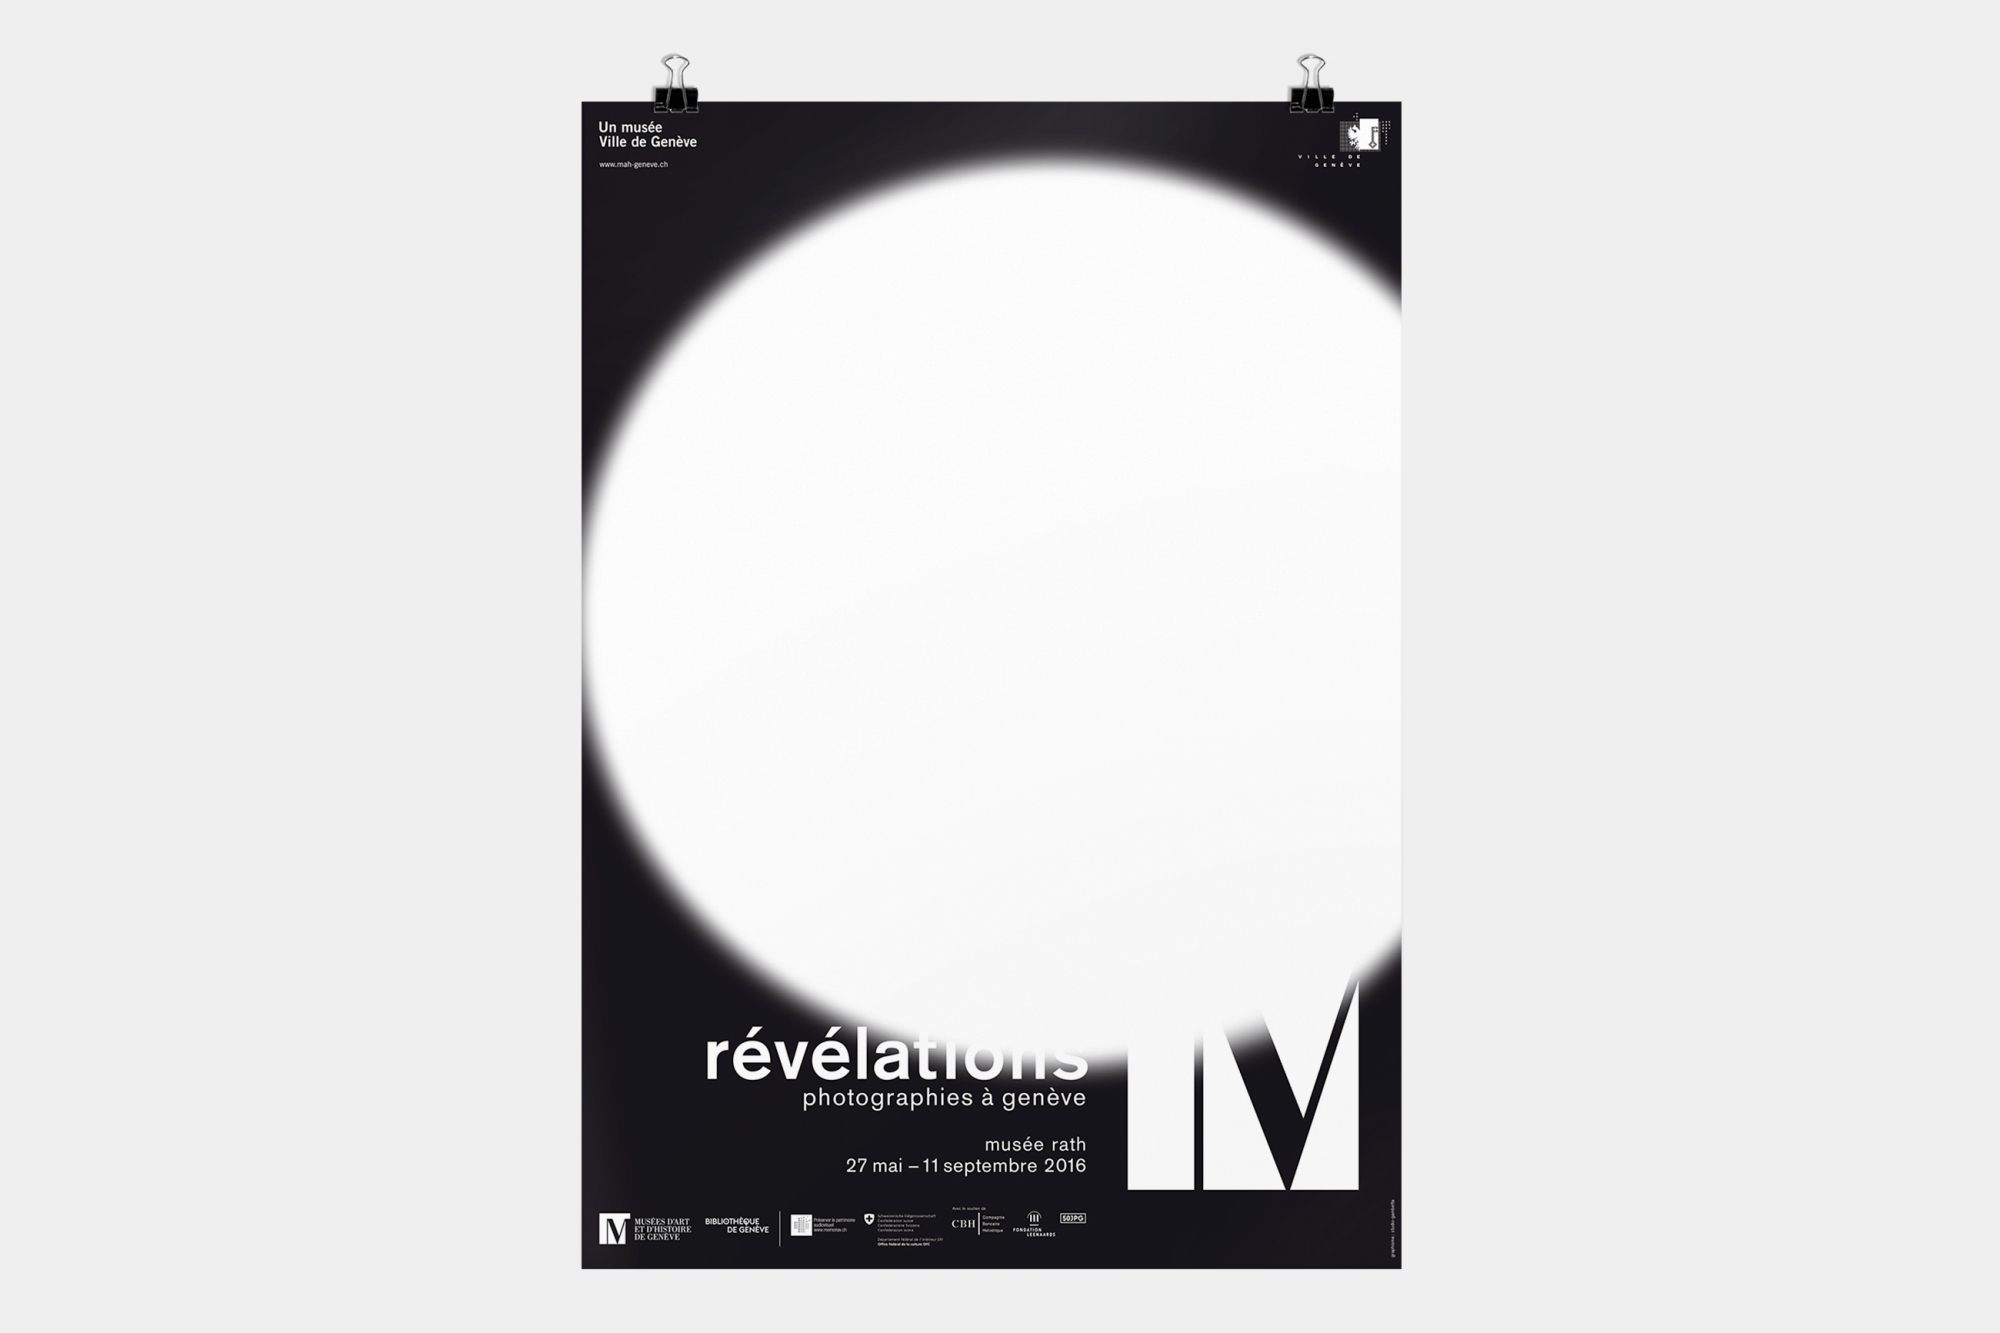 Graphisme Geneve graphic design graphique direction artistique mah exposition musee d'ethnographie 2016 musee rath revelations photographies serigraphie